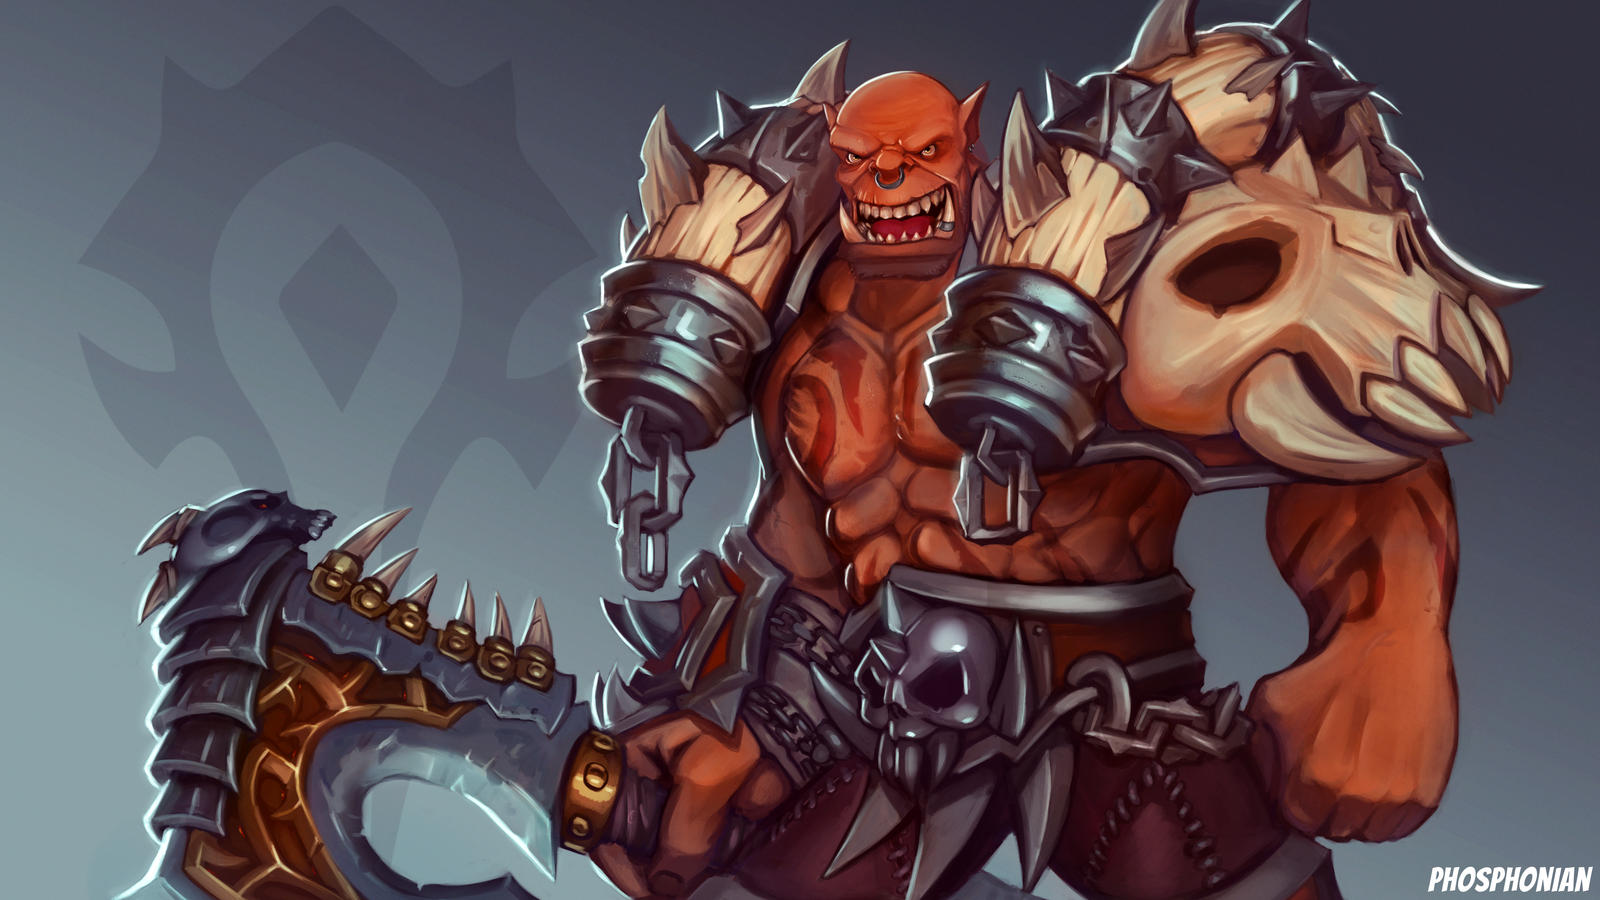 Hots Garrosh By Phosphonian On Deviantart Find the best hots garrosh build and learn garrosh's abilities, talents, and strategy. hots garrosh by phosphonian on deviantart